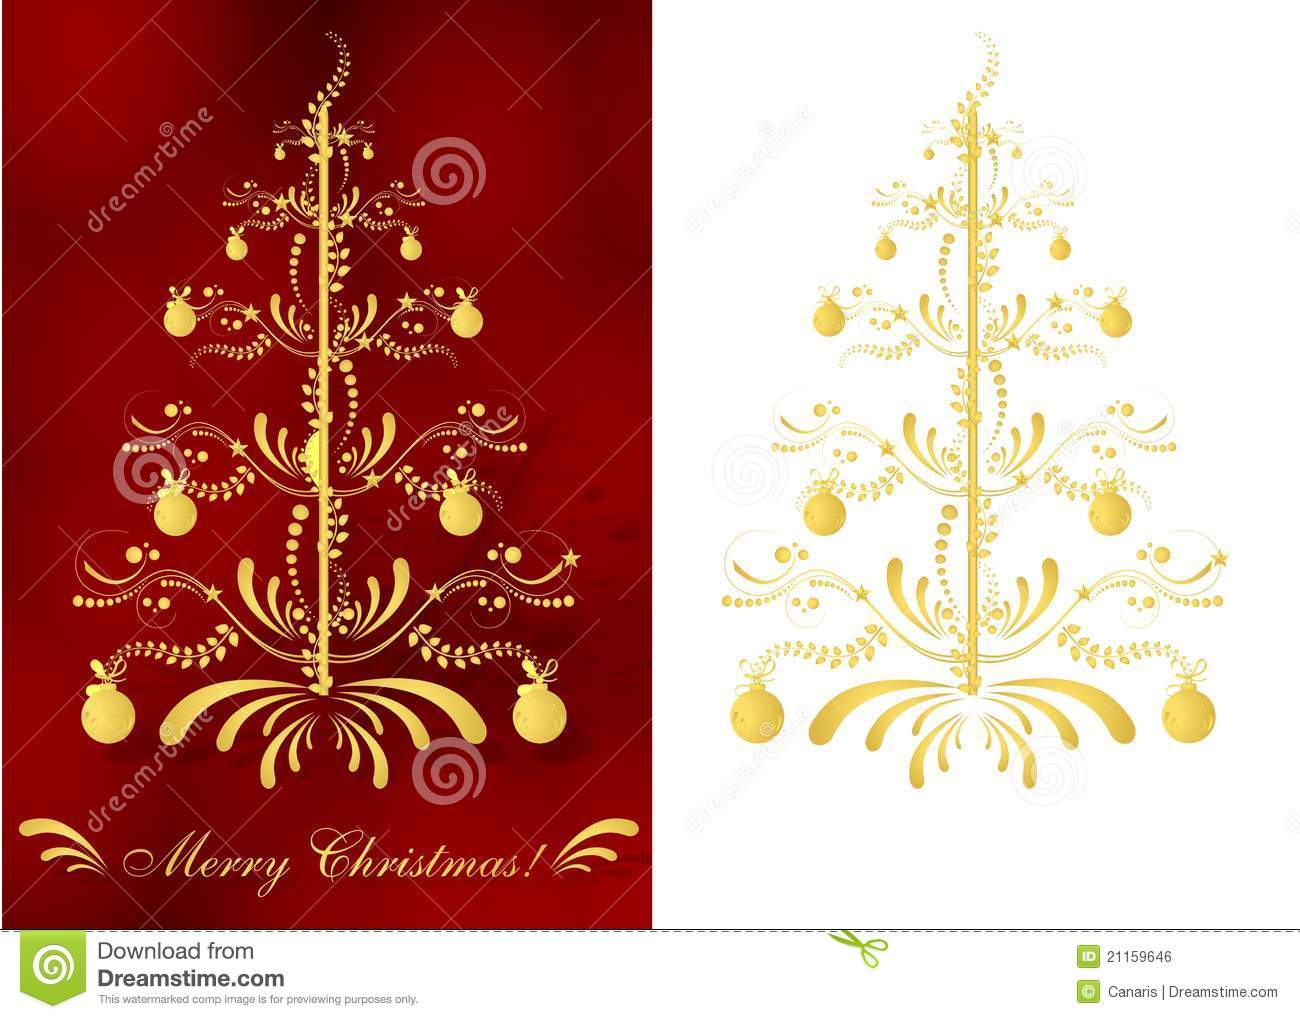 Christmas Greeting Card, Cdr Vector Stock Vector - Illustration of ...